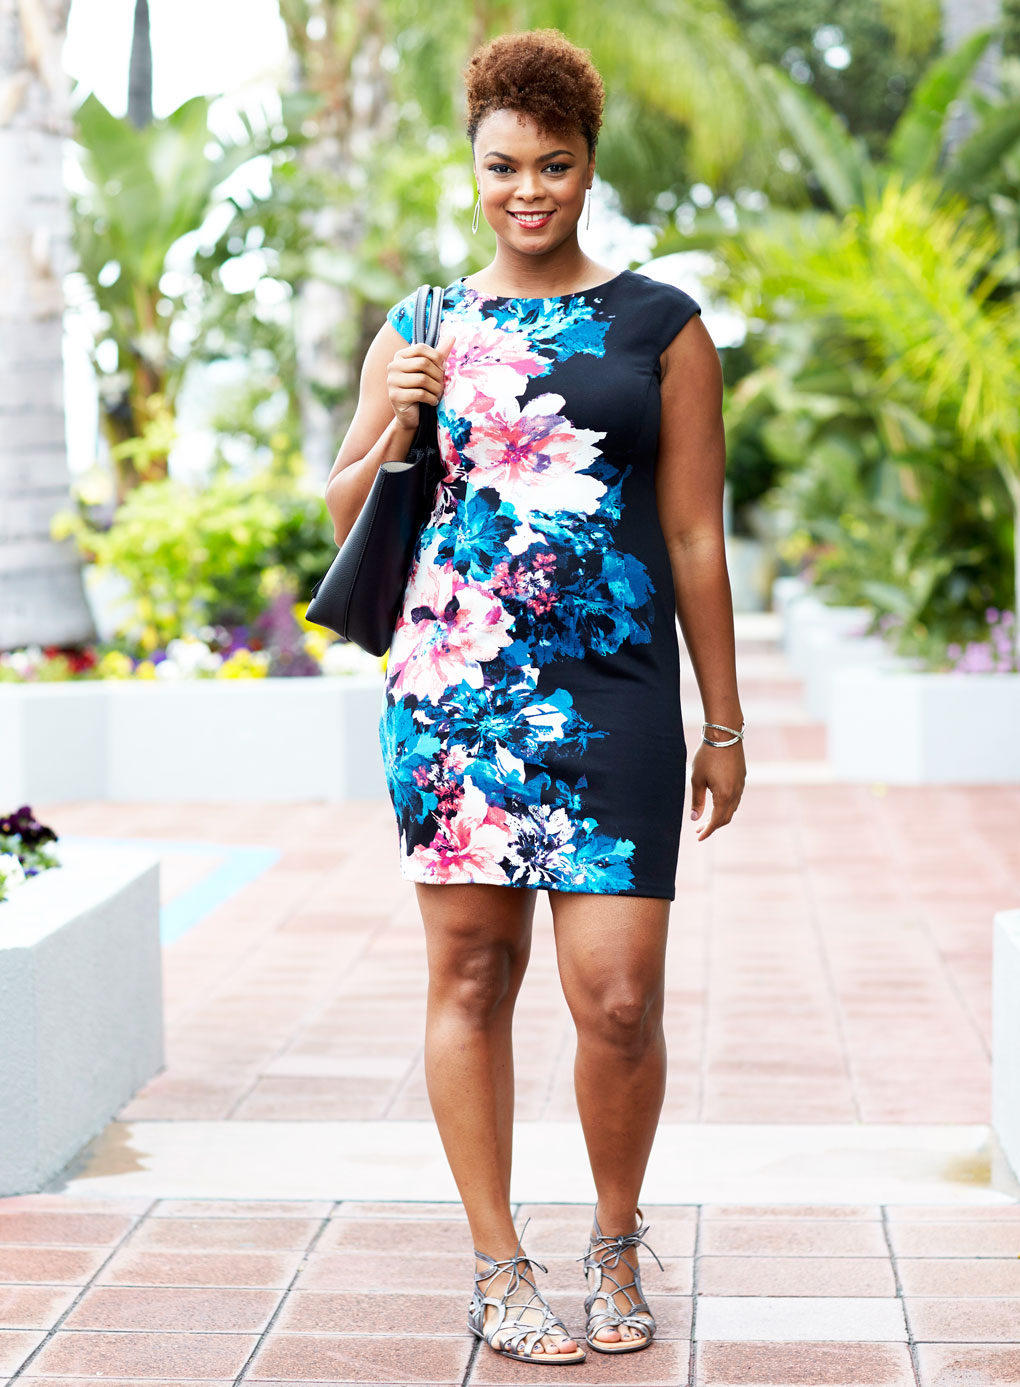 Sydne Style shows how to wear floral dresses for spring on lipstick giraffe